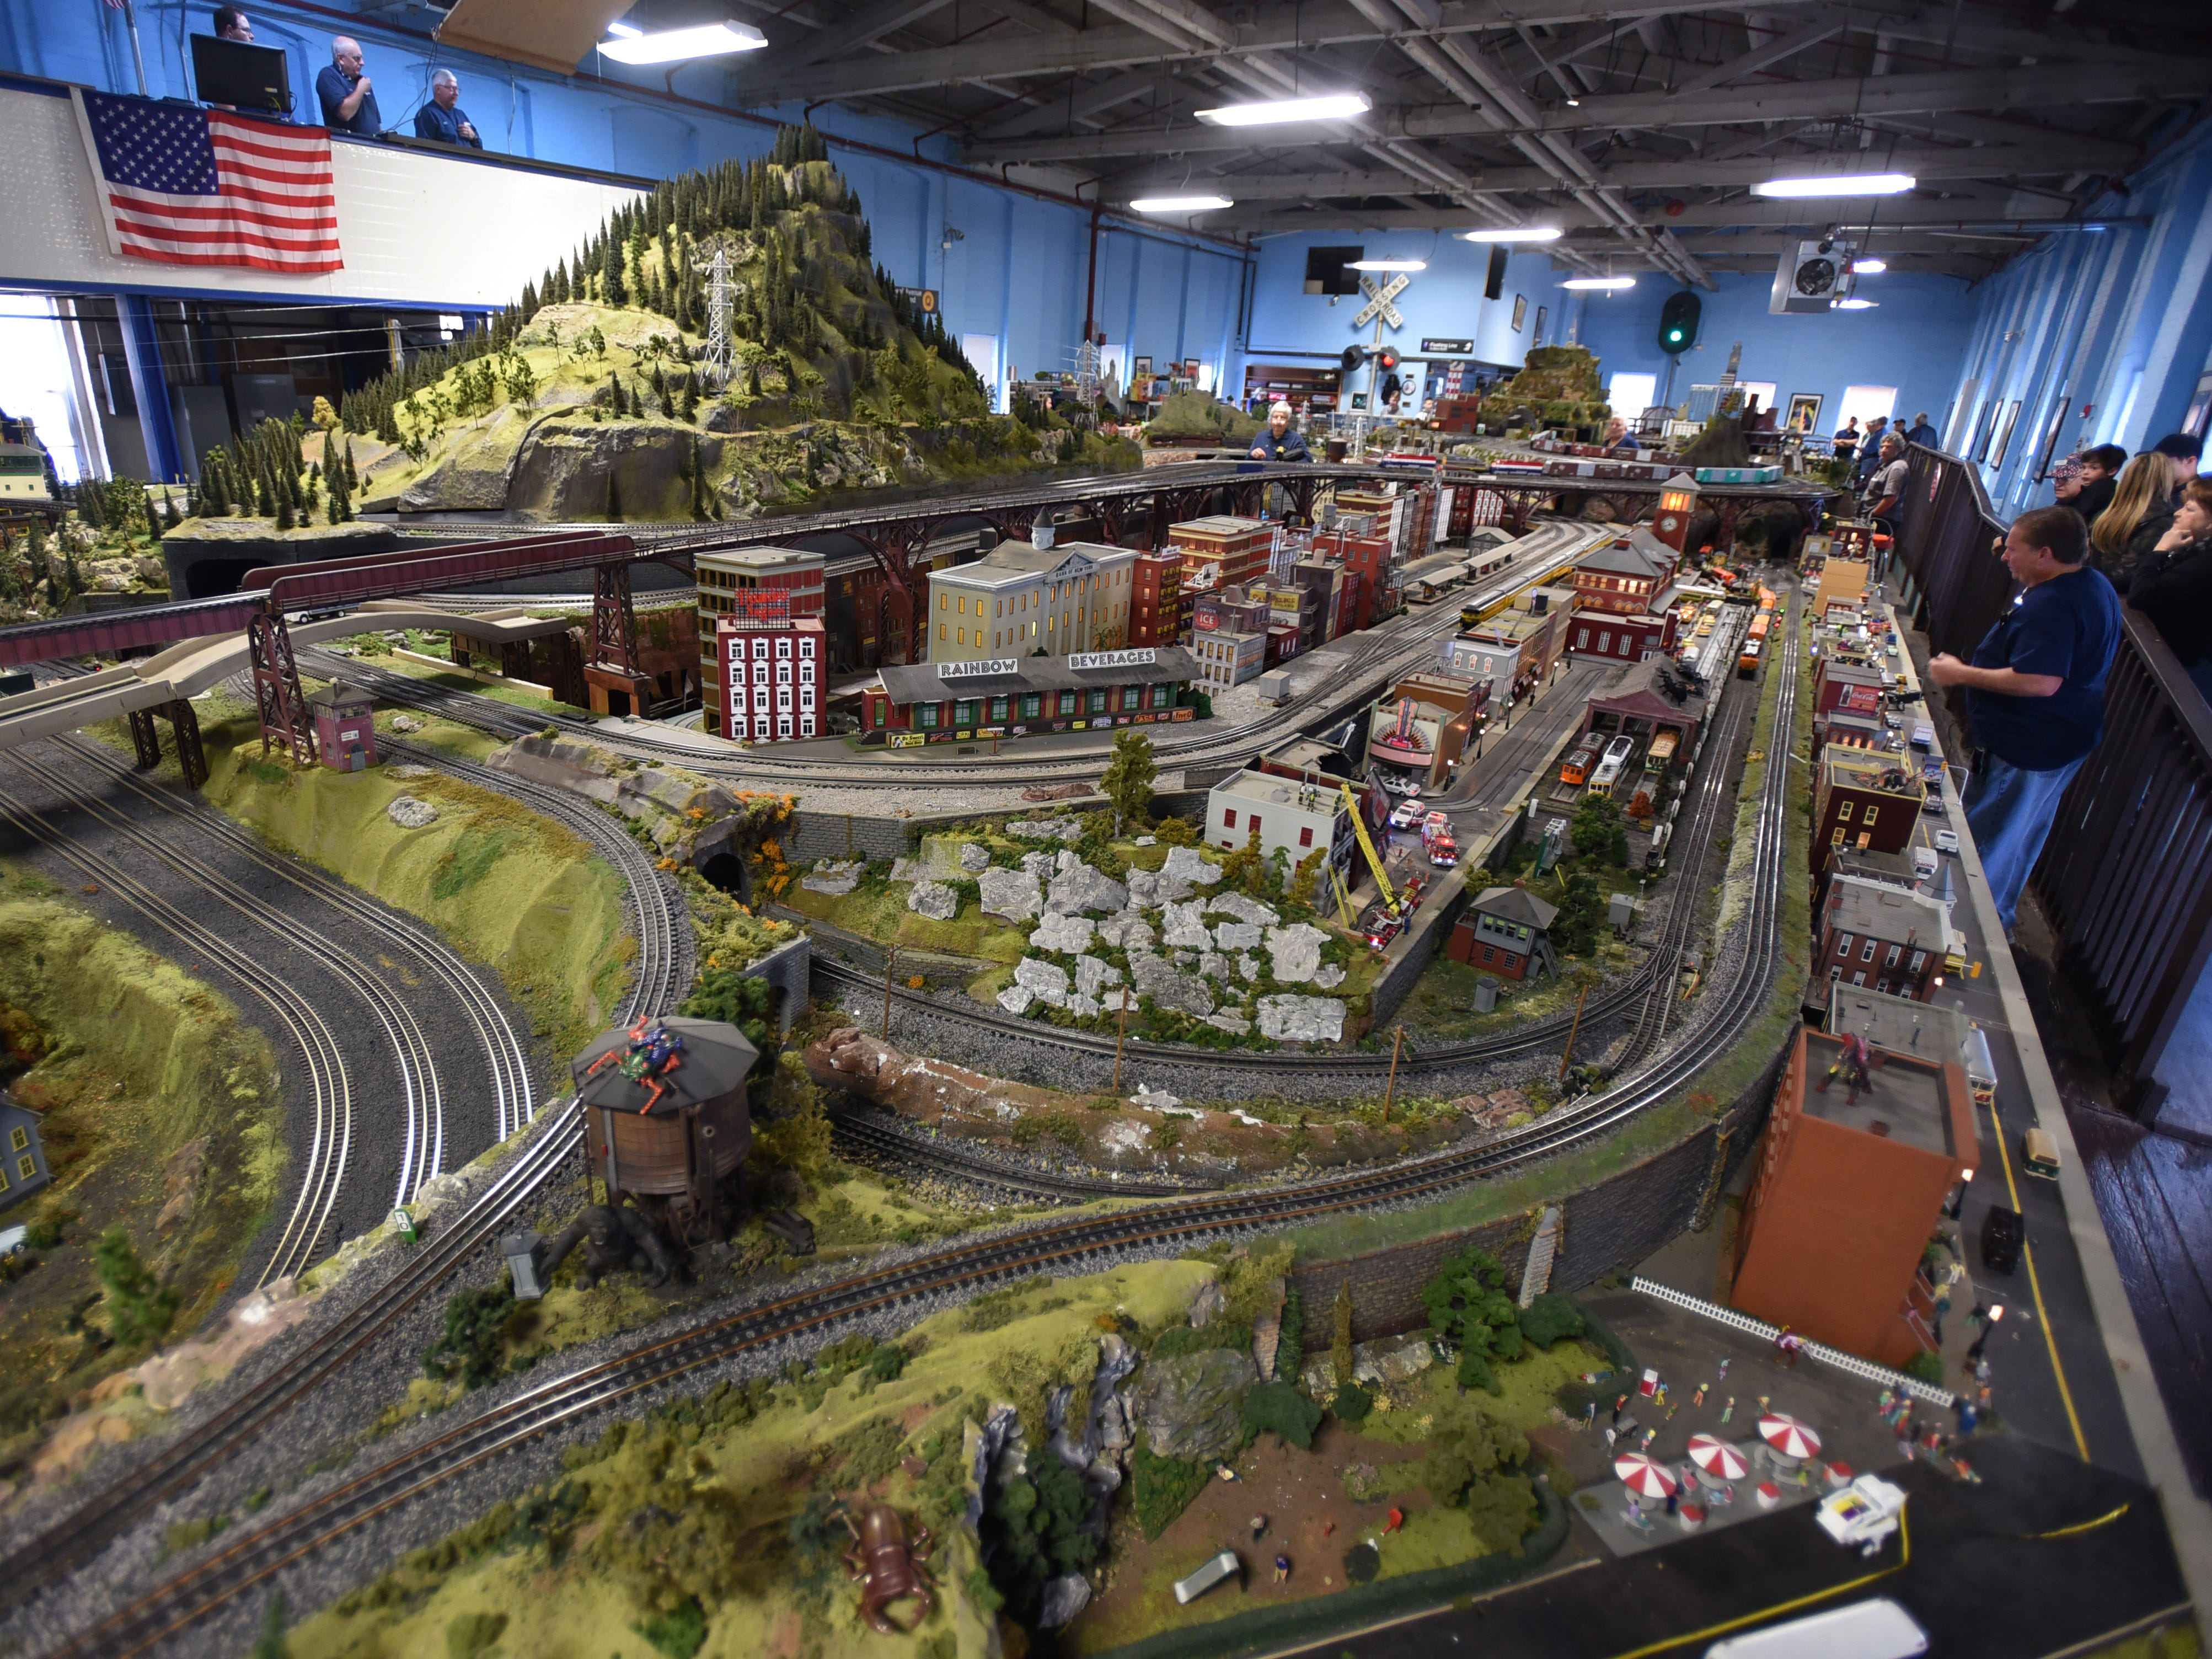 A view of the sprawling train layout.